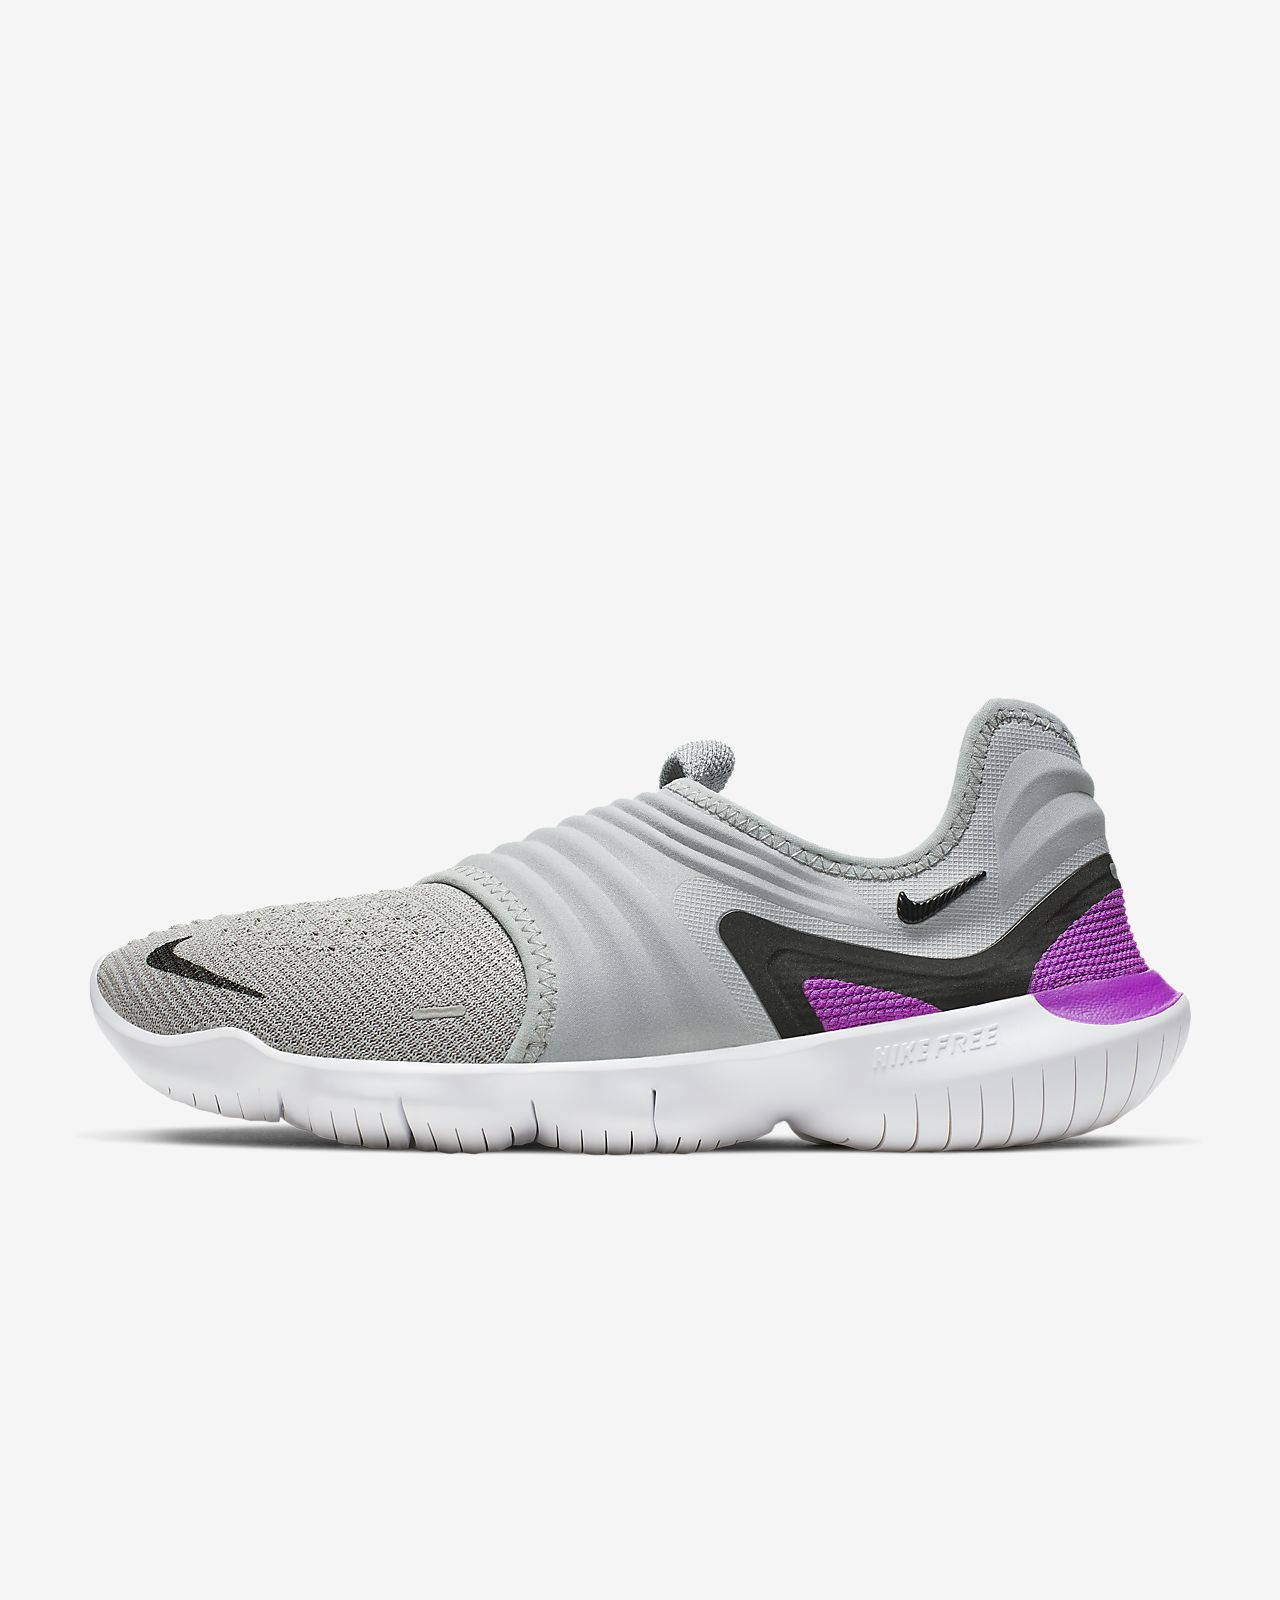 Running Homme Chaussure 0 Pour De Free Flyknit Rn Nike 3 P0wOkn